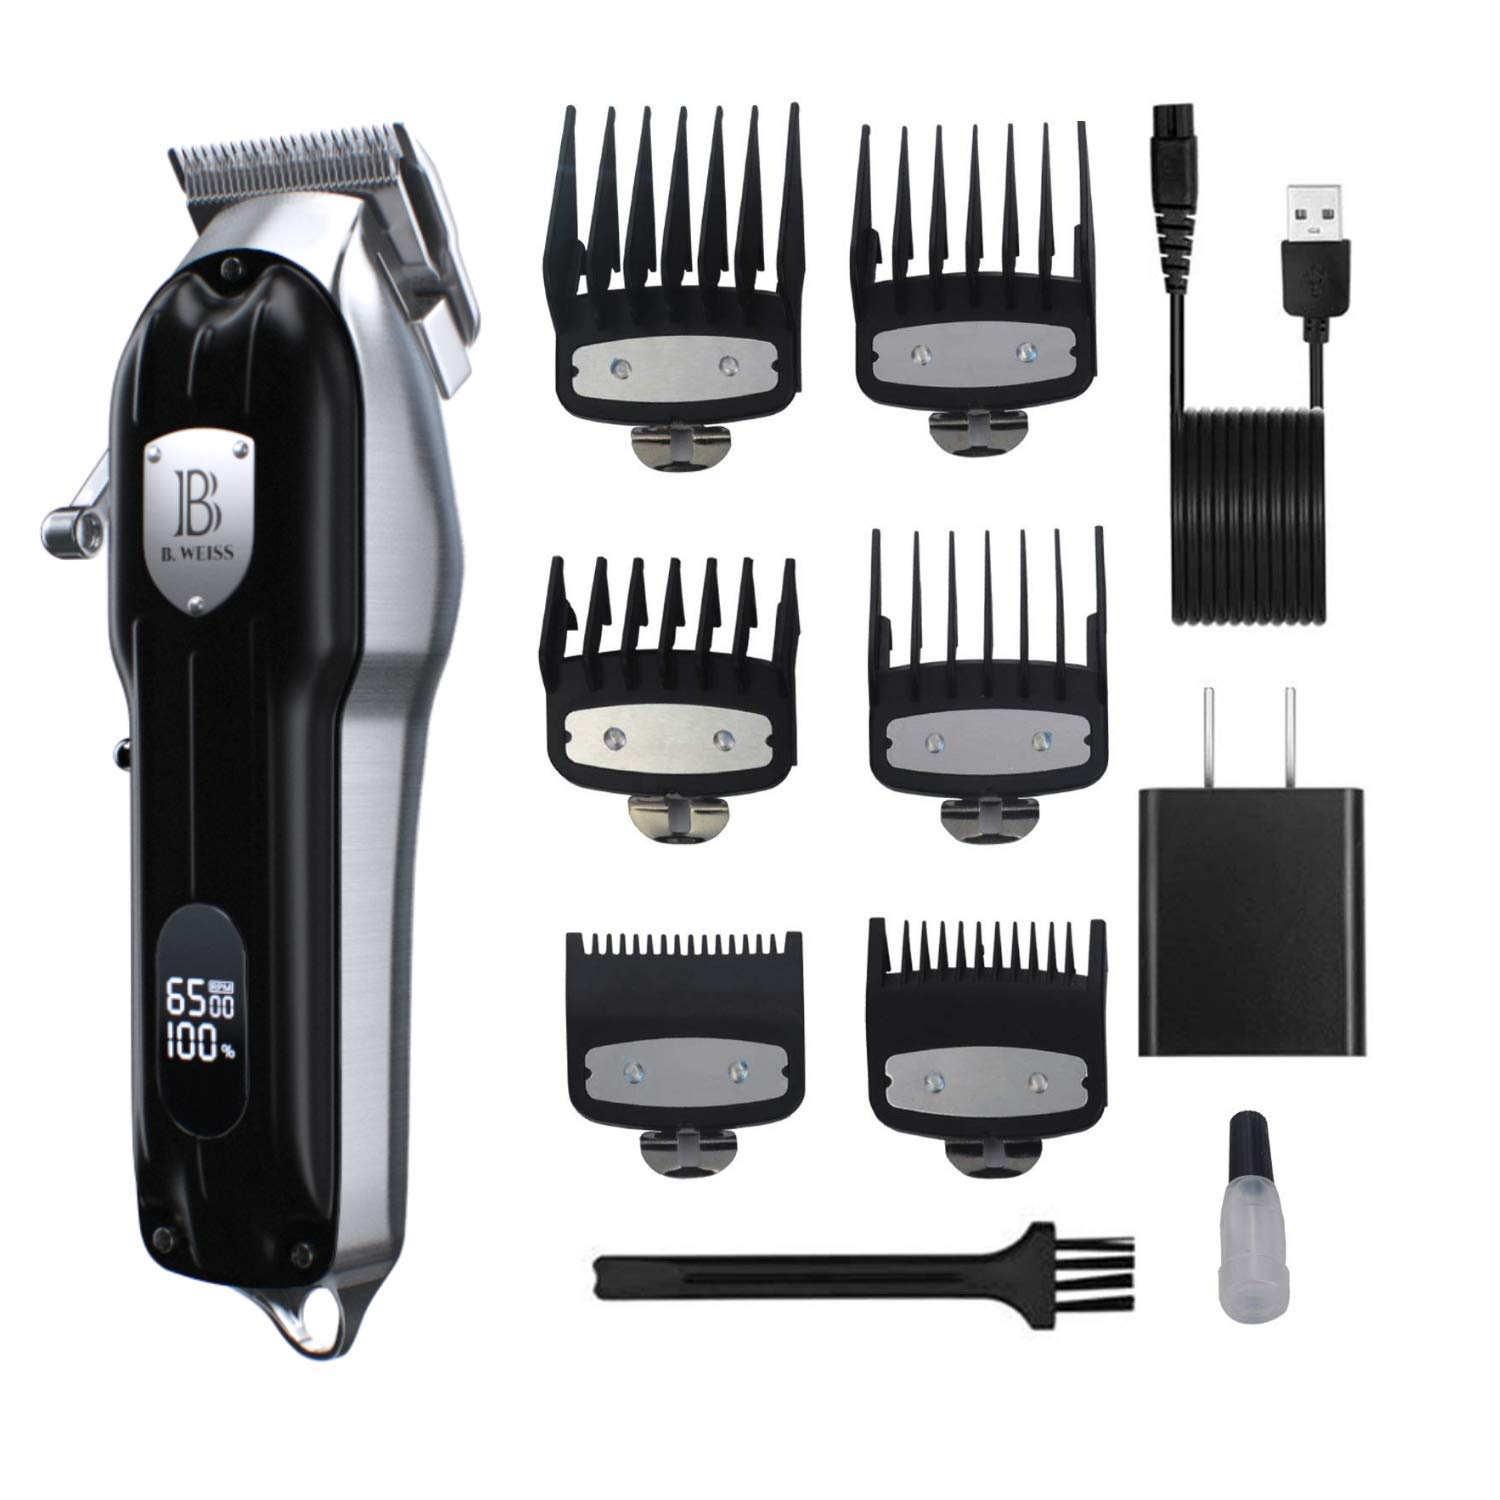 Hair clippers for men, self haircut kit for men's And children At Home, The B Clipper By (B. WEISS) Cordless Hair Trimmer Professional Haircut & Grooming Kit For Men Rechargeable LED Display